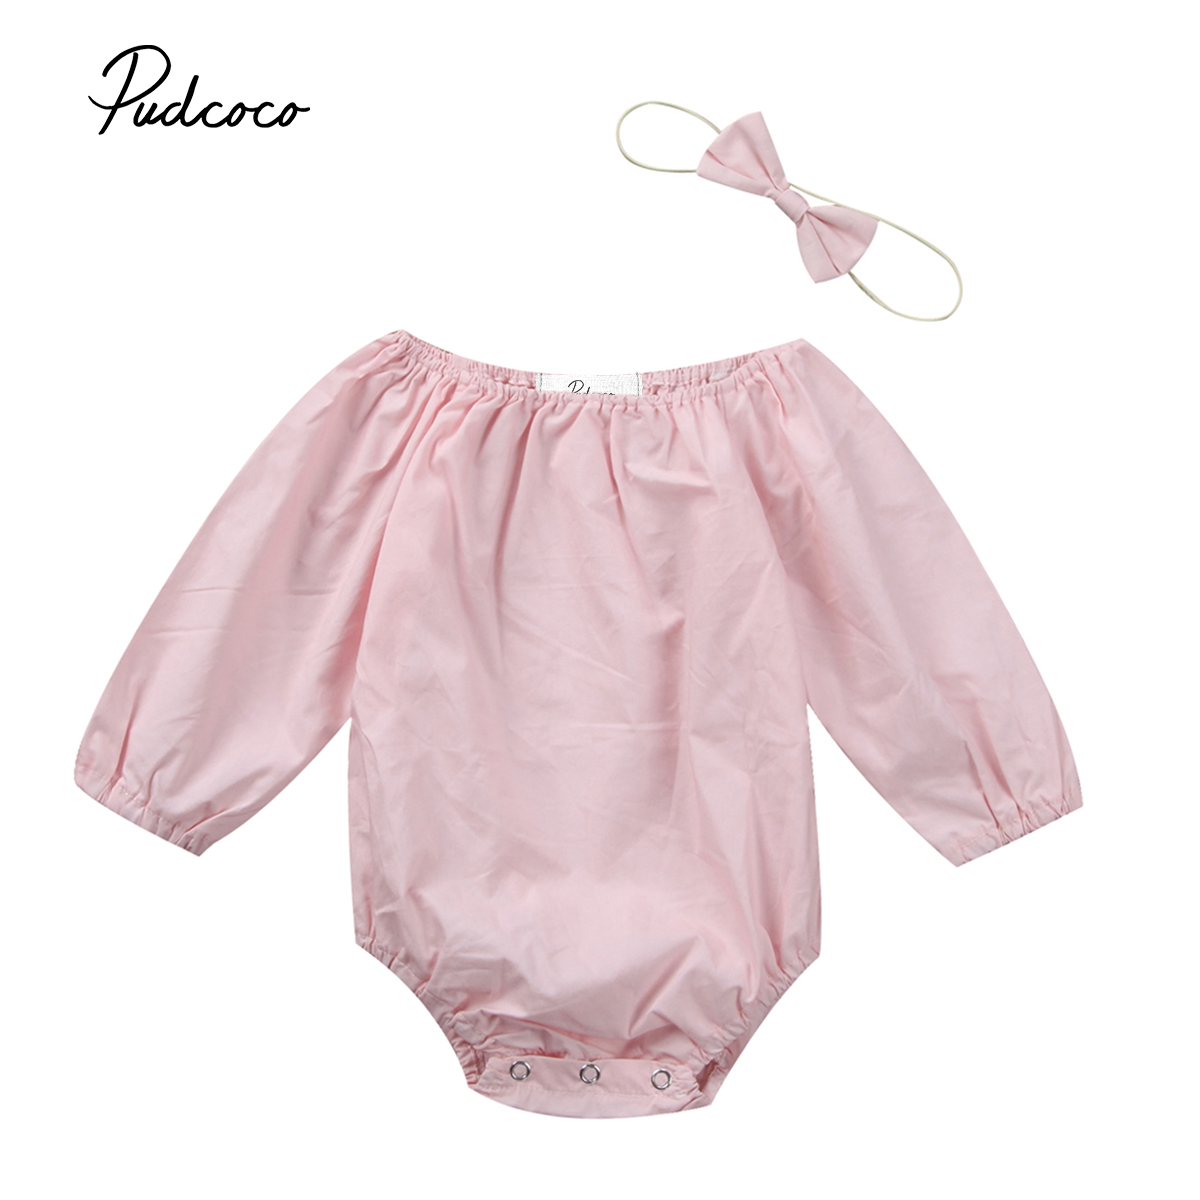 Pudcoco Newborn Infant Baby Girls Romper Solid Long Sleeve Loose Jumpsuit Handband Cotton Winter Clothes Playsuit One-Piece pudcoco newborn infant baby girls clothes short sleeve floral romper headband summer cute cotton one piece clothes